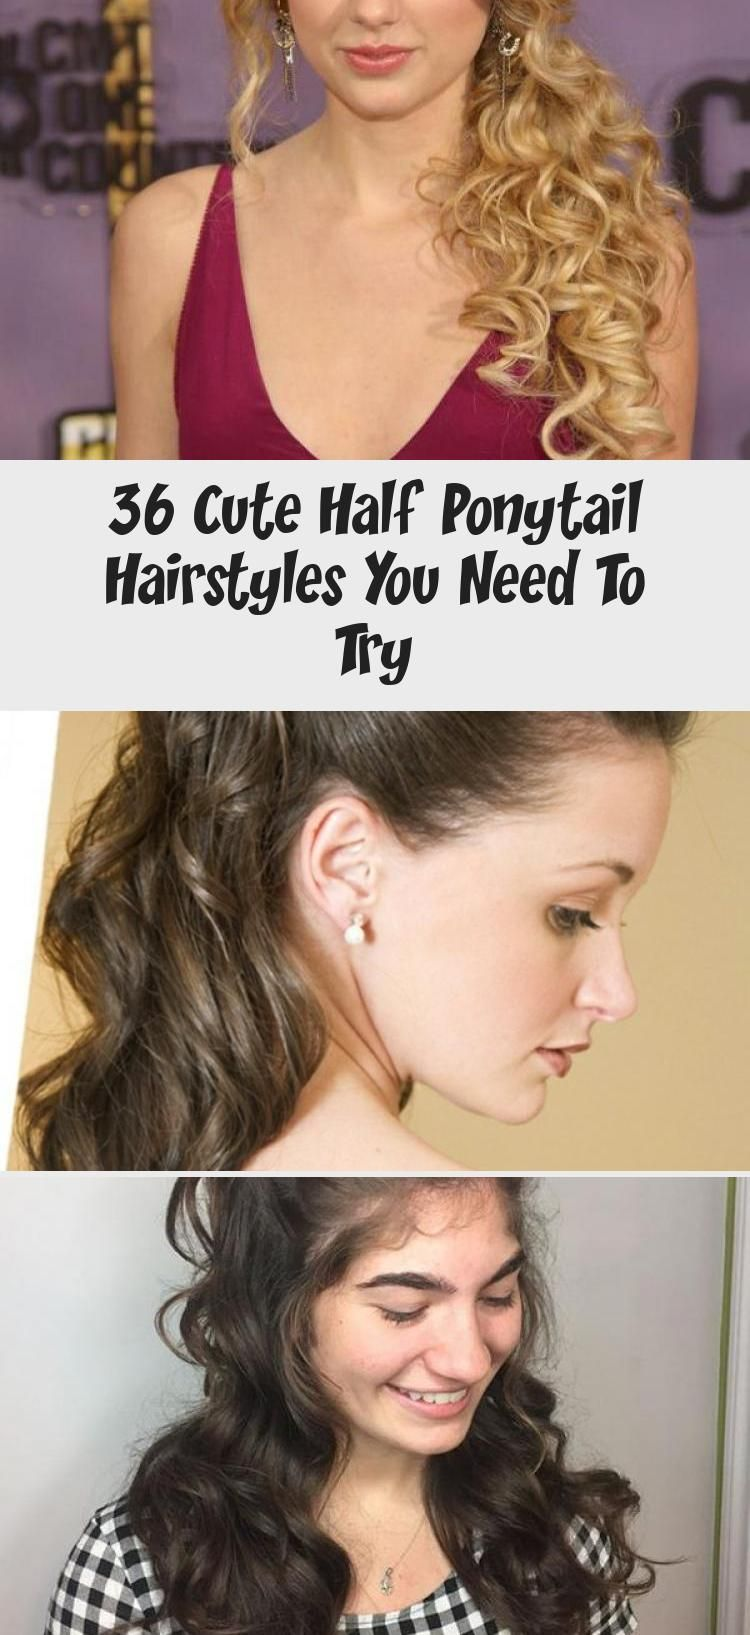 36 Cute Half Ponytail Hairstyles You Need To Try Hairstyle In 2020 Half Ponytail Try On Hairstyles Ponytail Hairstyles